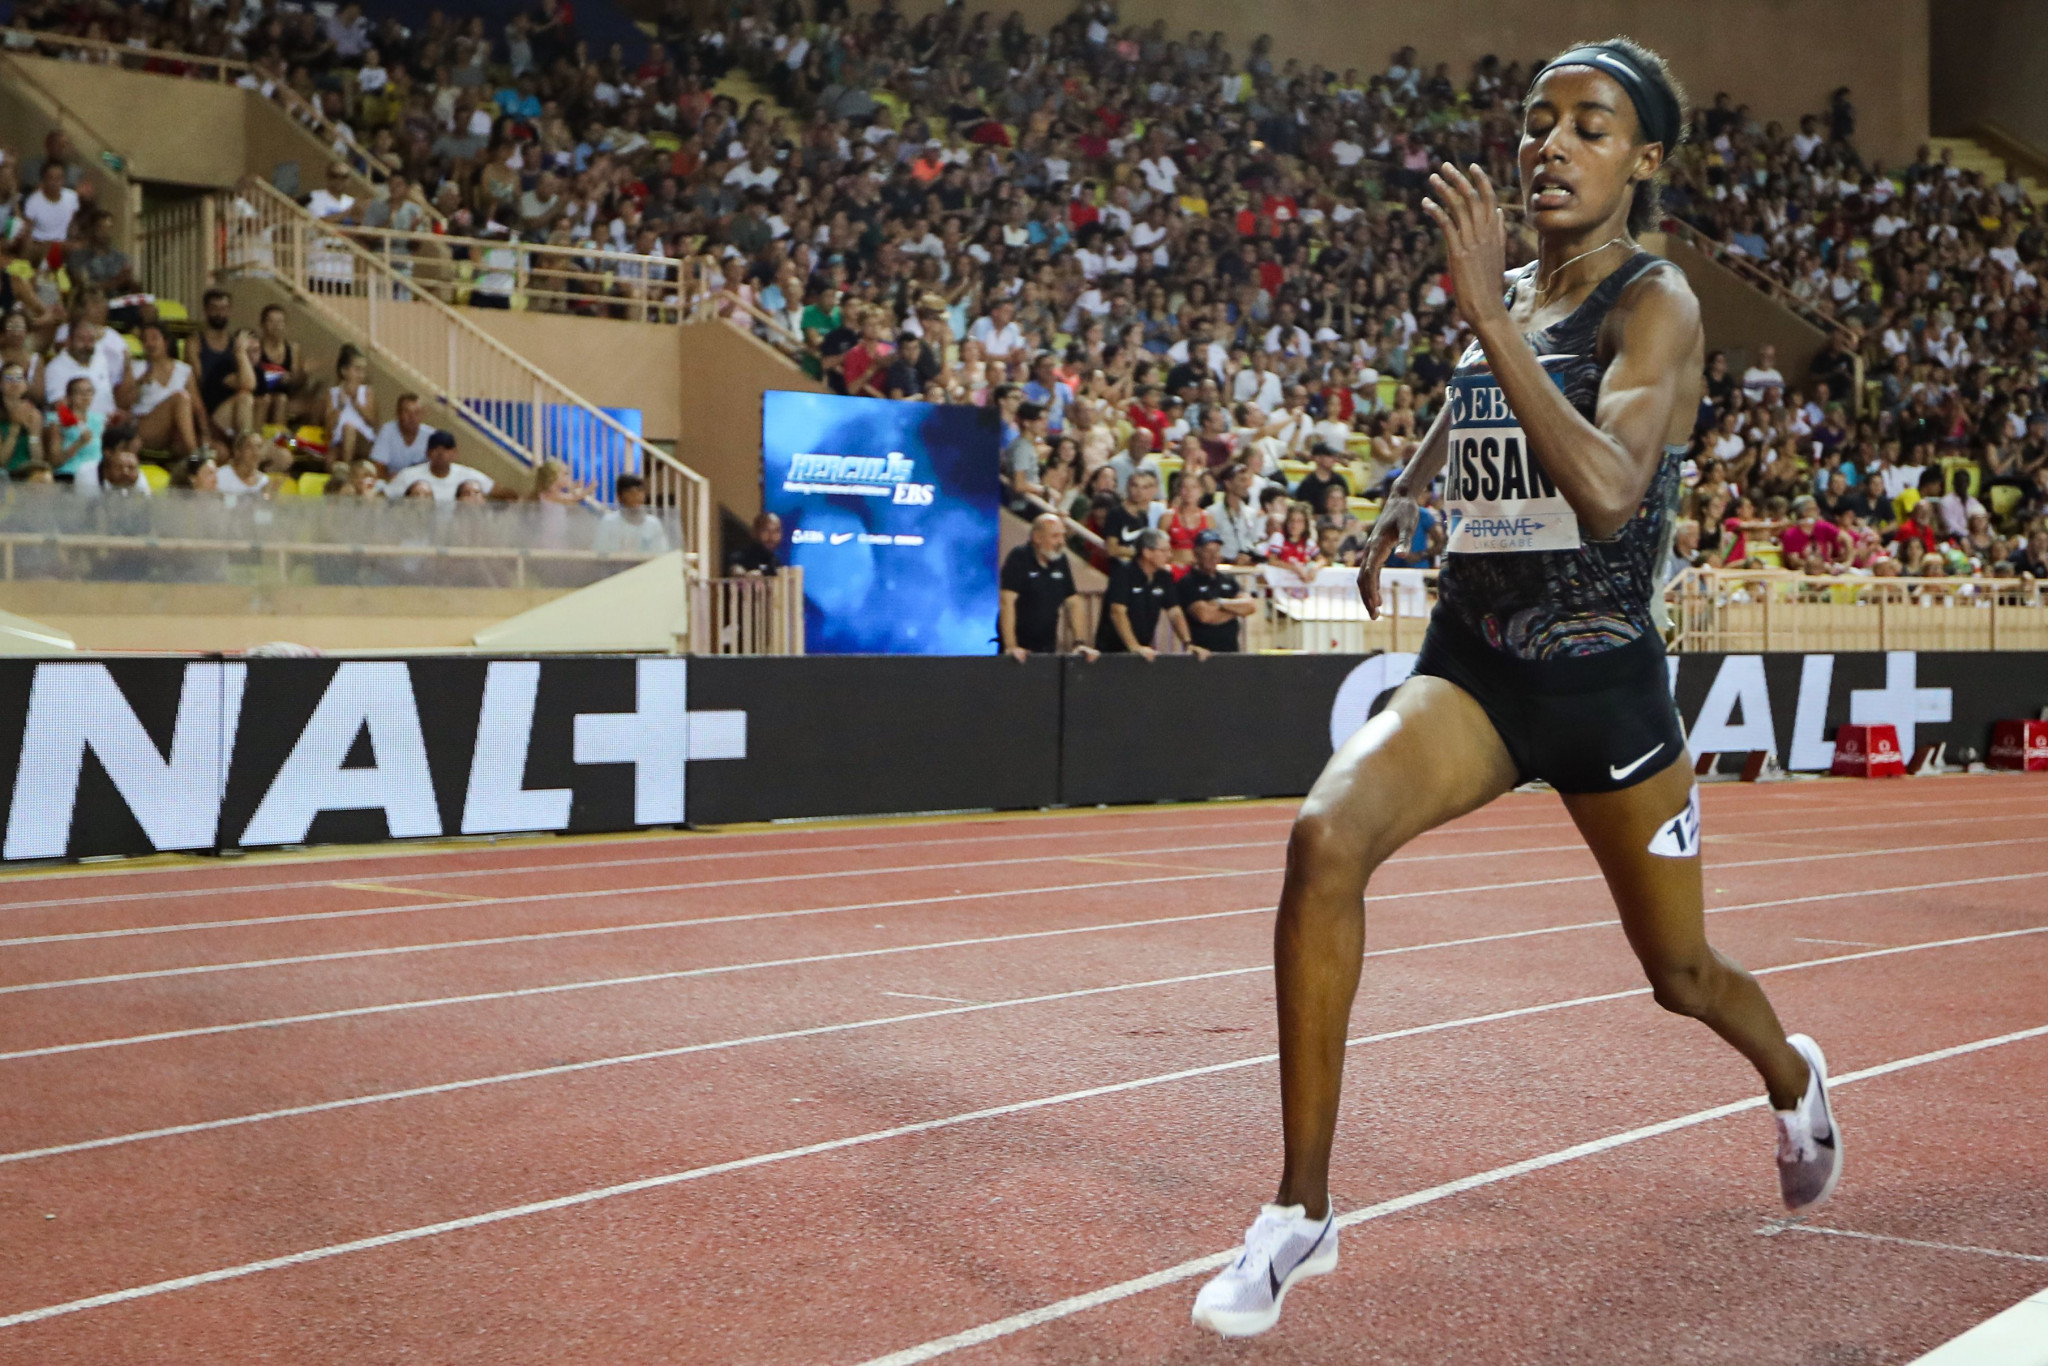 World mile record breaker Sifan Hassan will run over 5,000m this weekend at the IAAF Diamond League meeting at London Stadium ©Getty Images